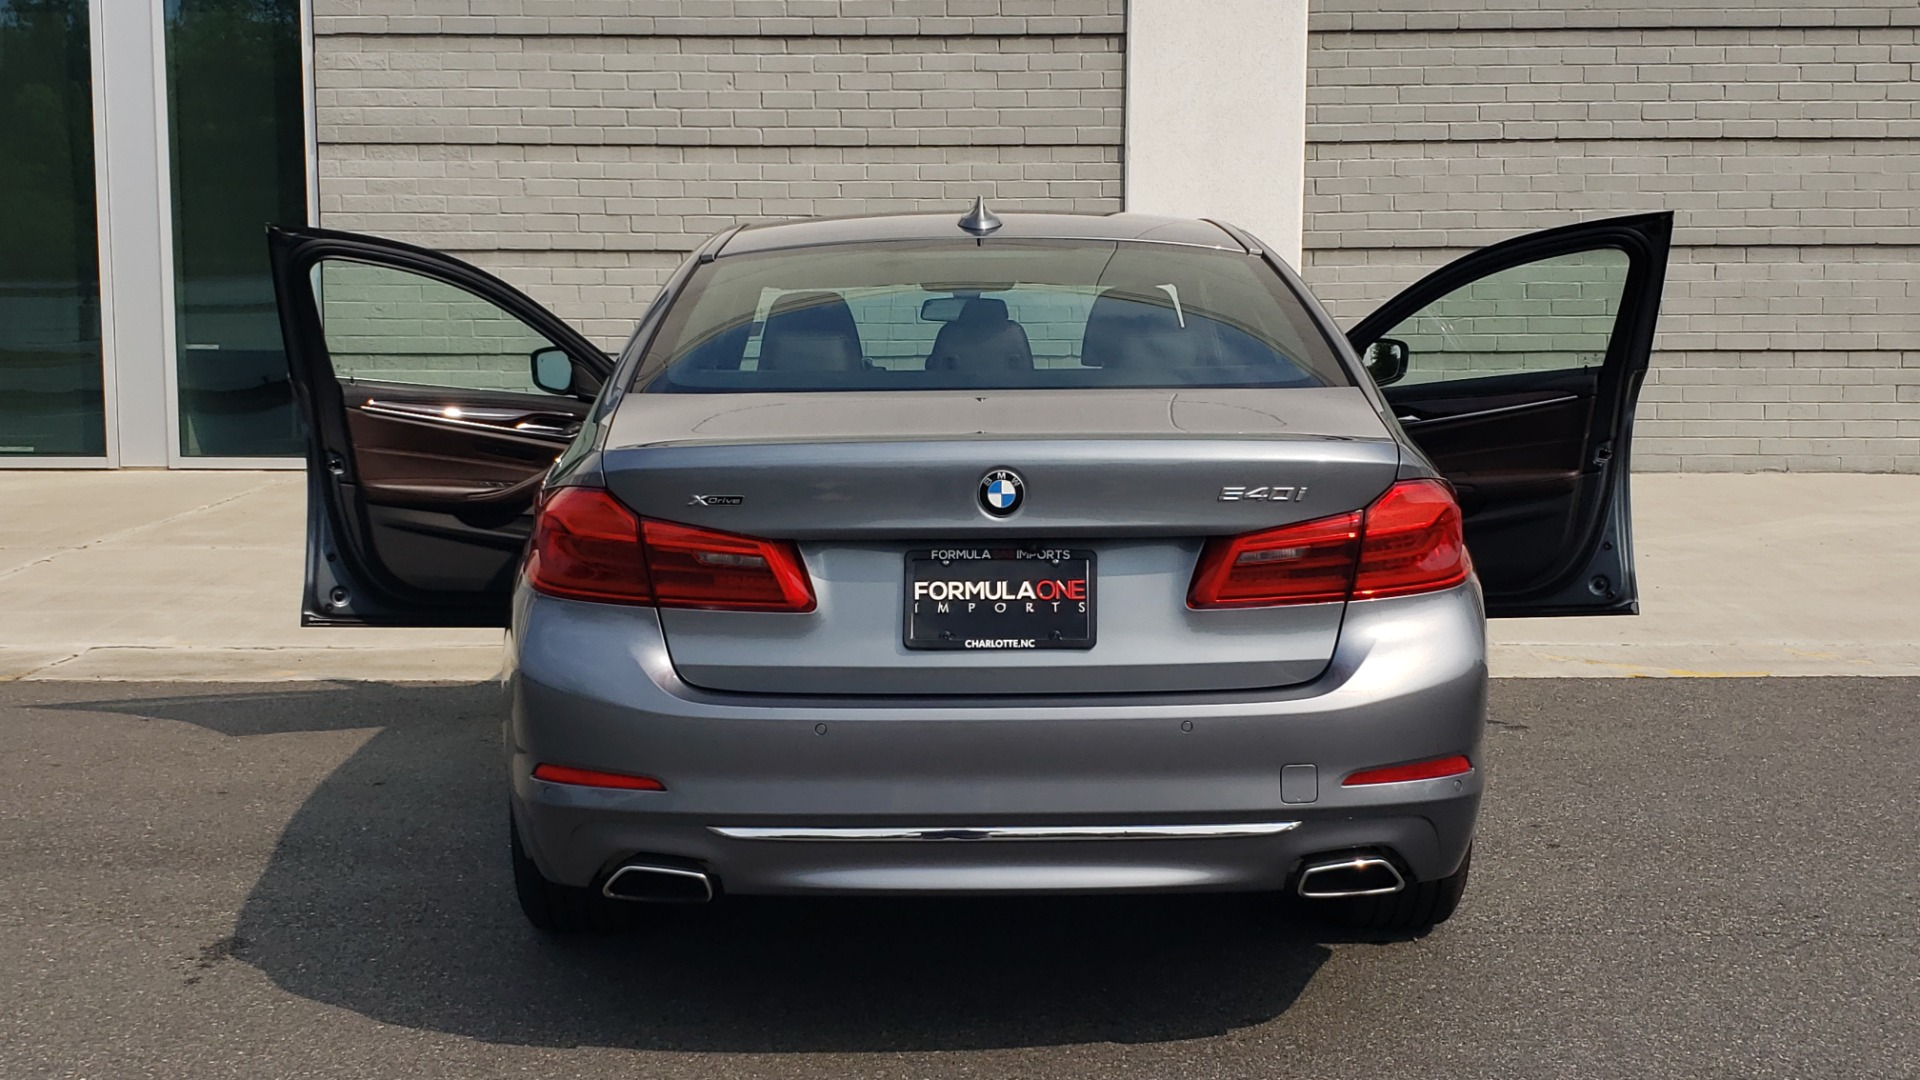 Used 2018 BMW 5 SERIES 540I XDRIVE PREMIUM / EXECUTIVE / LUXURY / H/K SND / REMOTE CONTROL PARKING for sale $40,995 at Formula Imports in Charlotte NC 28227 27